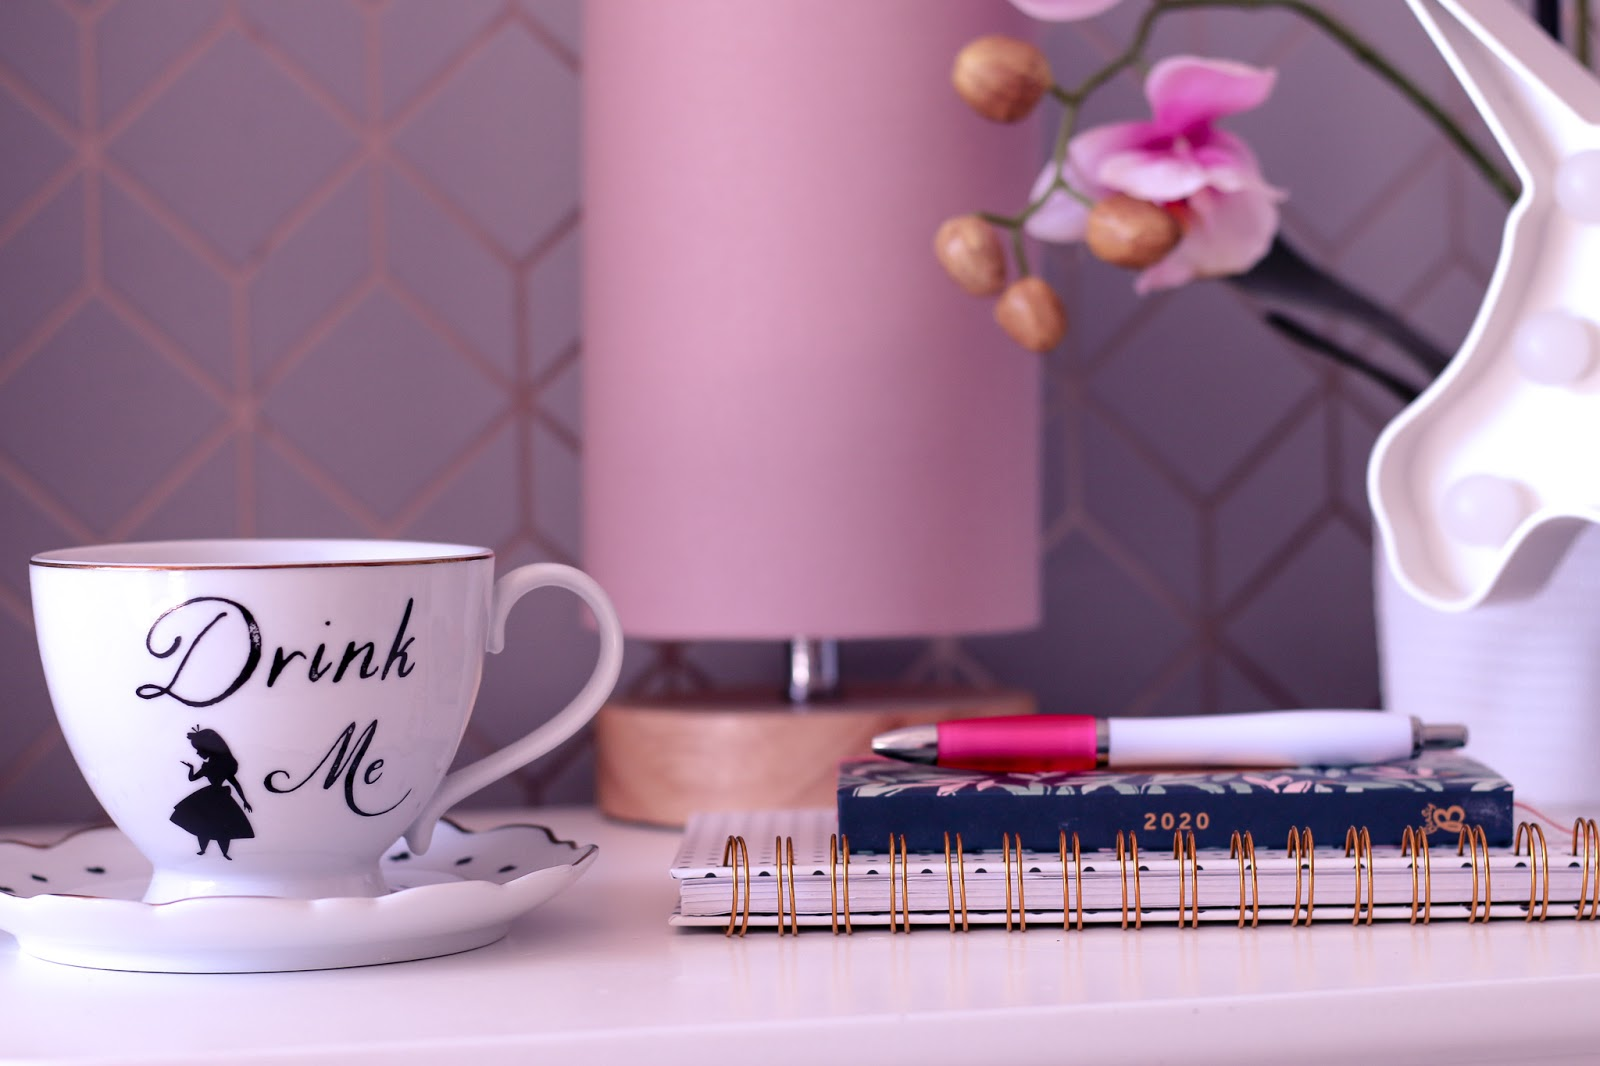 Close up photo of a 2020 diary and a white tea cup on top on a white side table with a pink lamp and faux pink orchid in the background blurred.